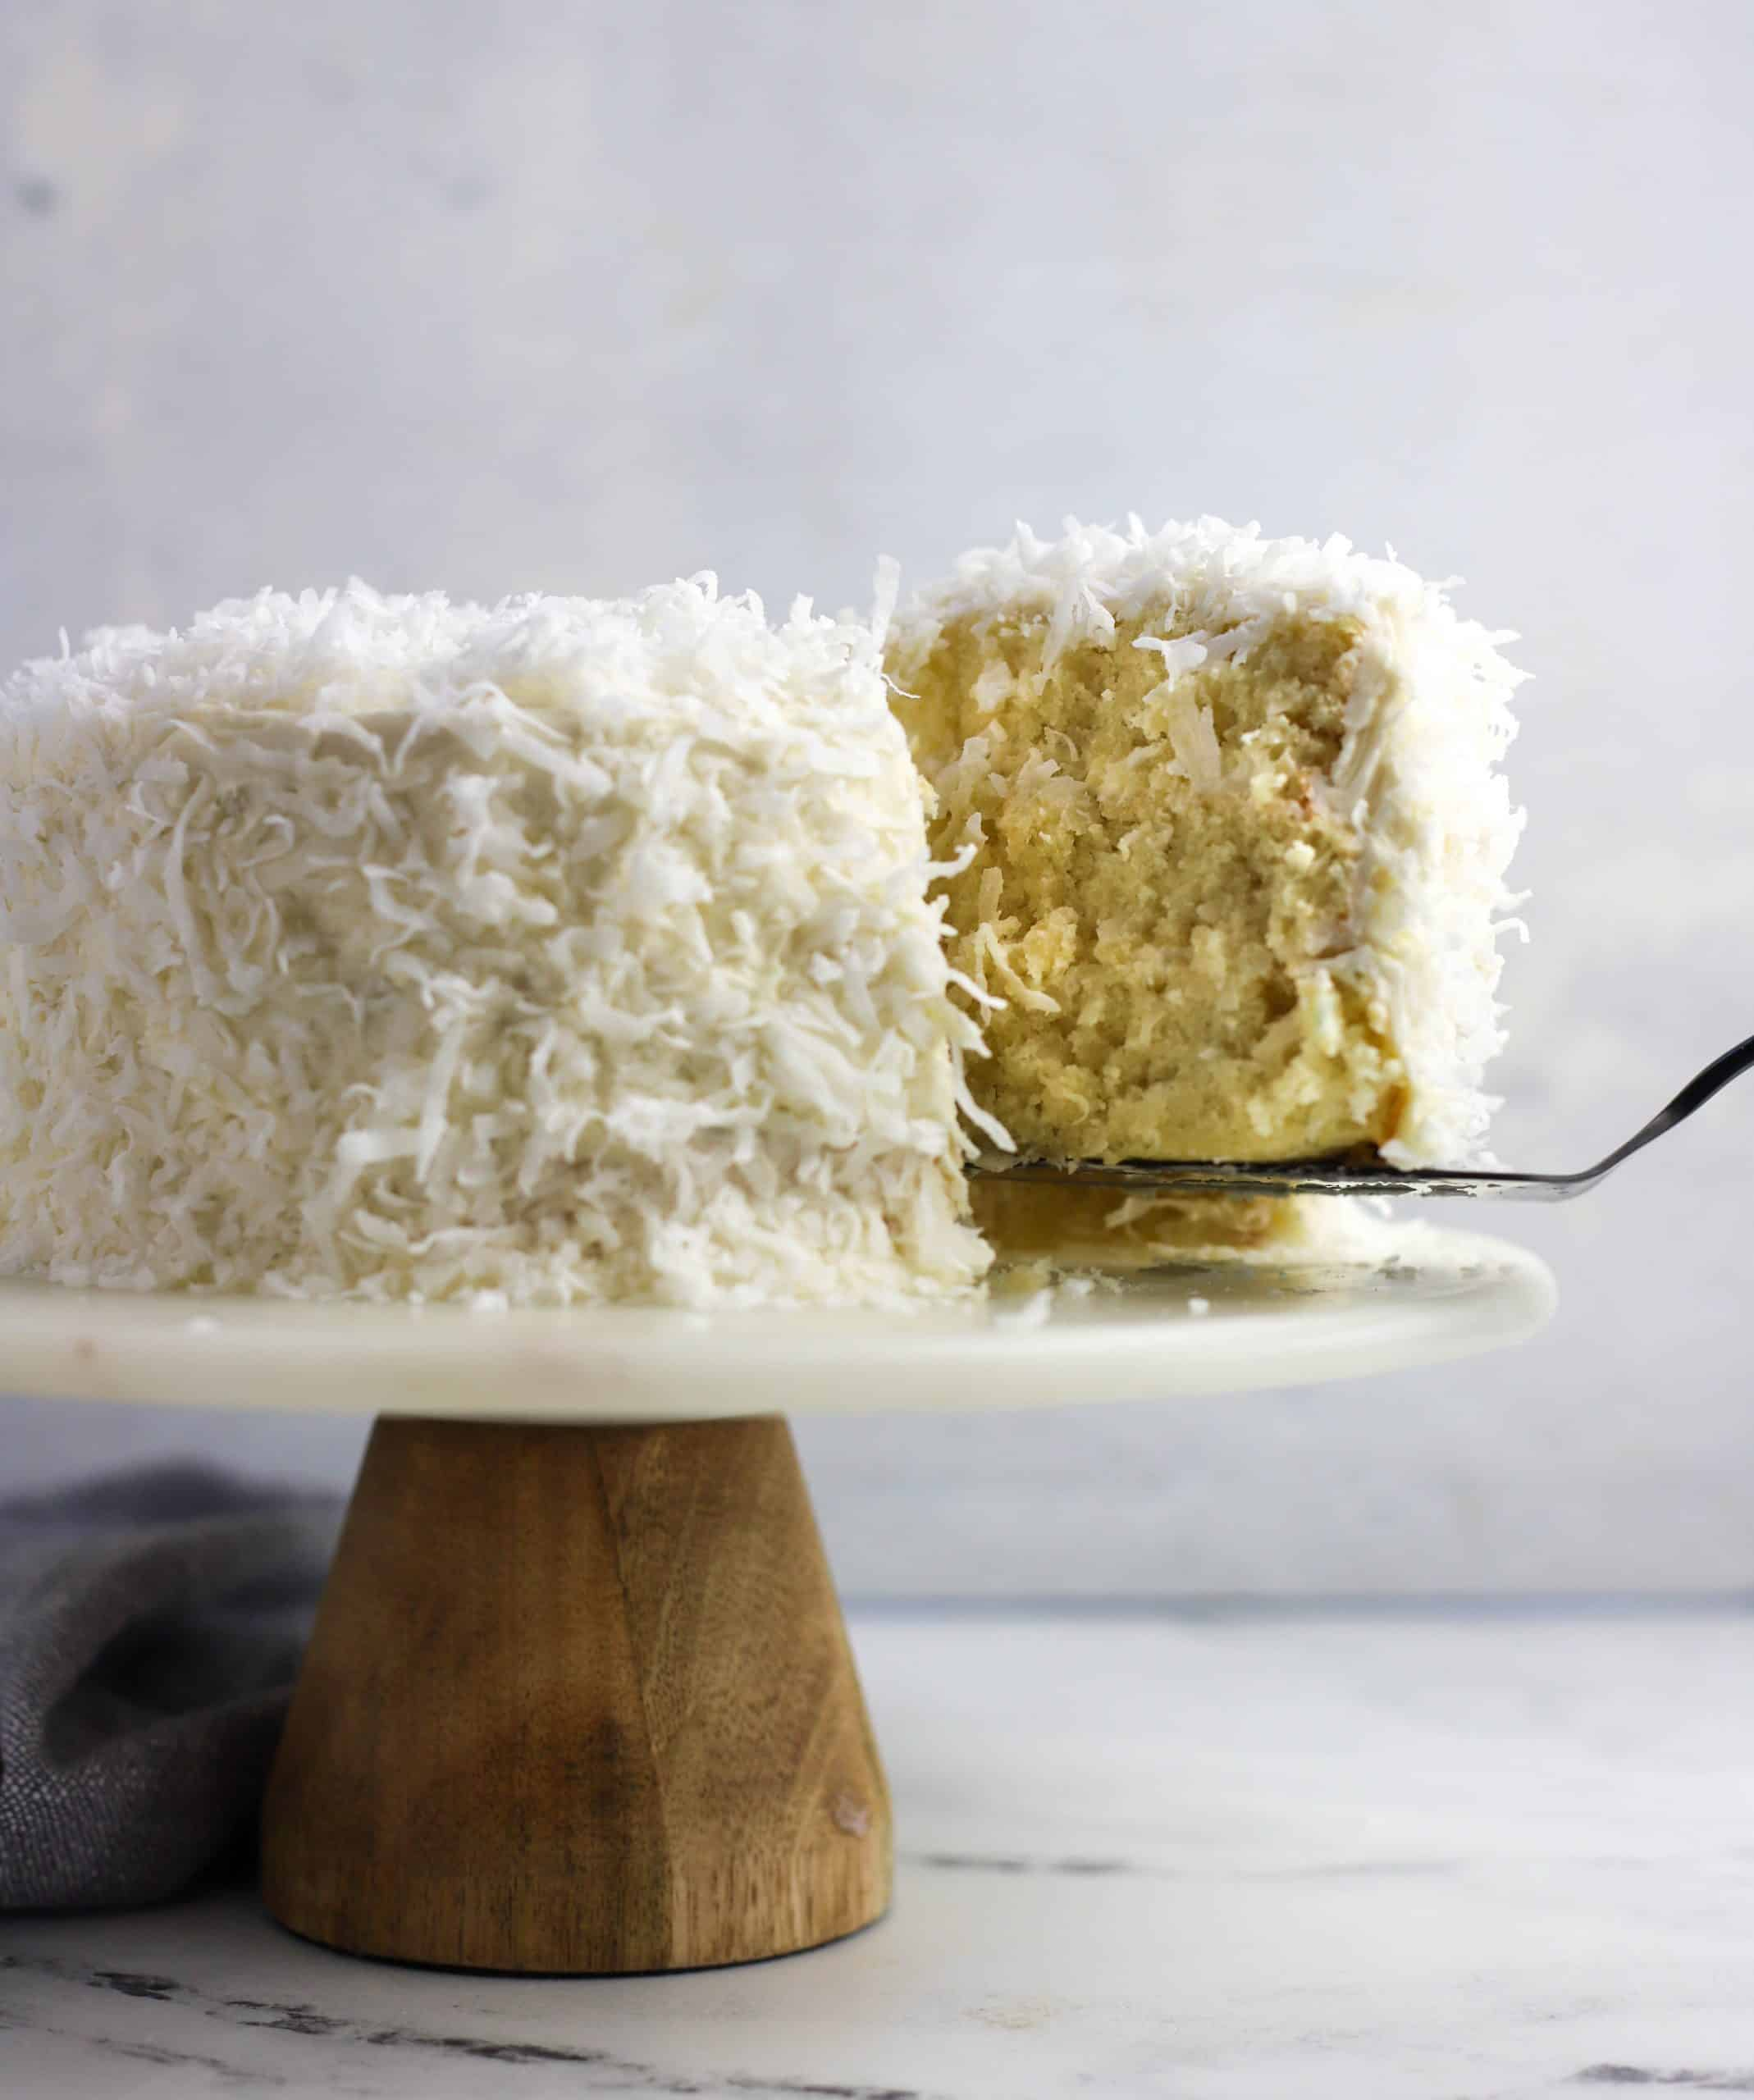 coconut cake slice being removed from the whole cake